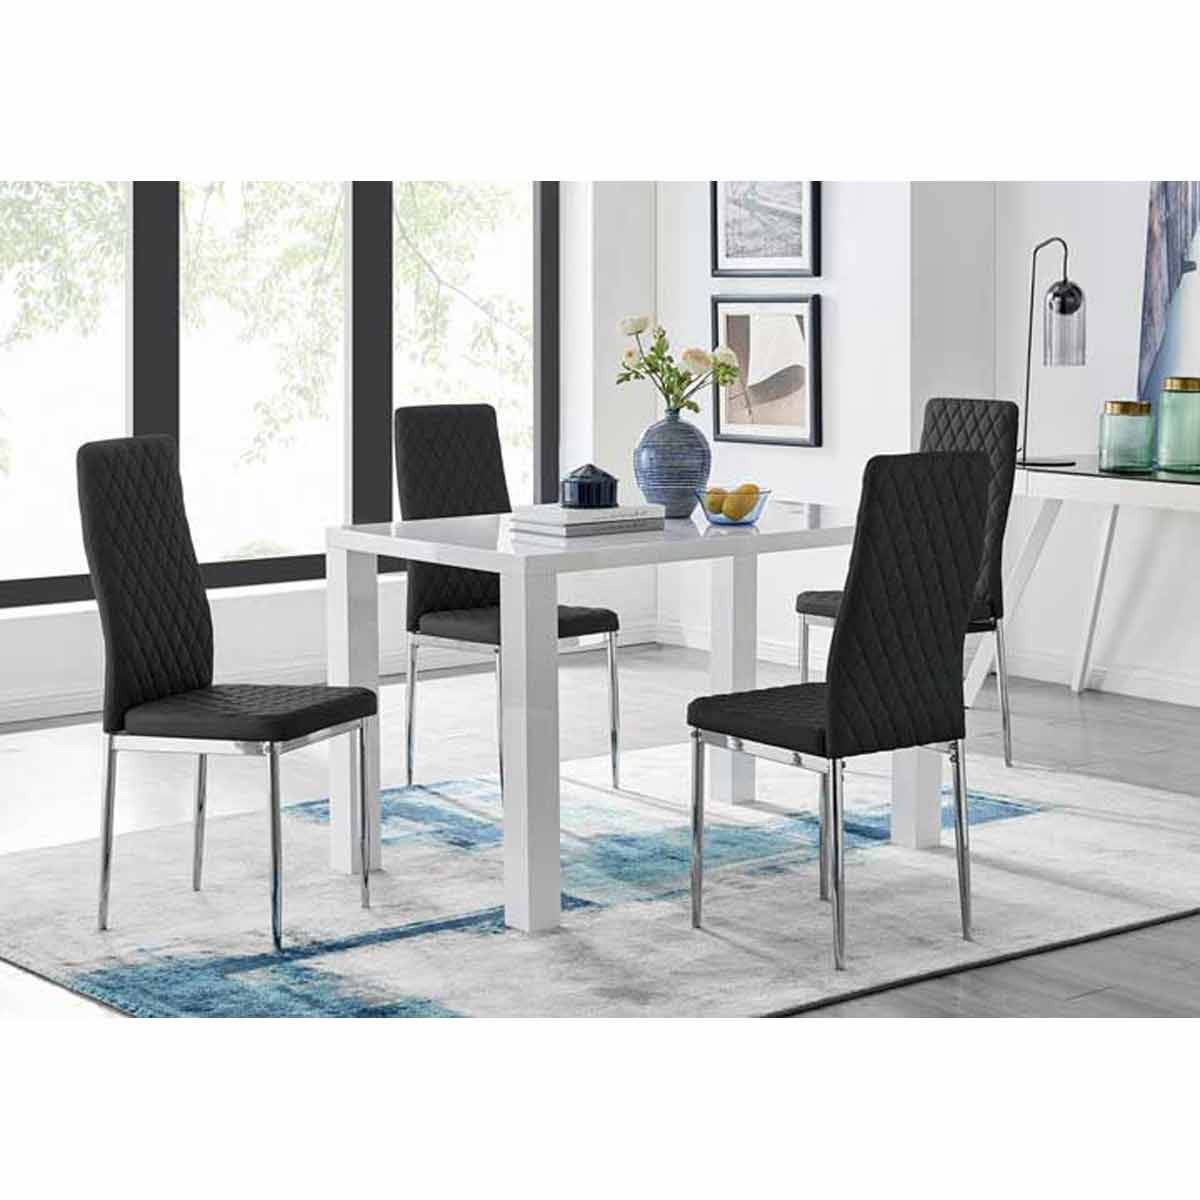 Furniture Box Pivero White High Gloss Dining Table and 4 Black Milan Chairs Set